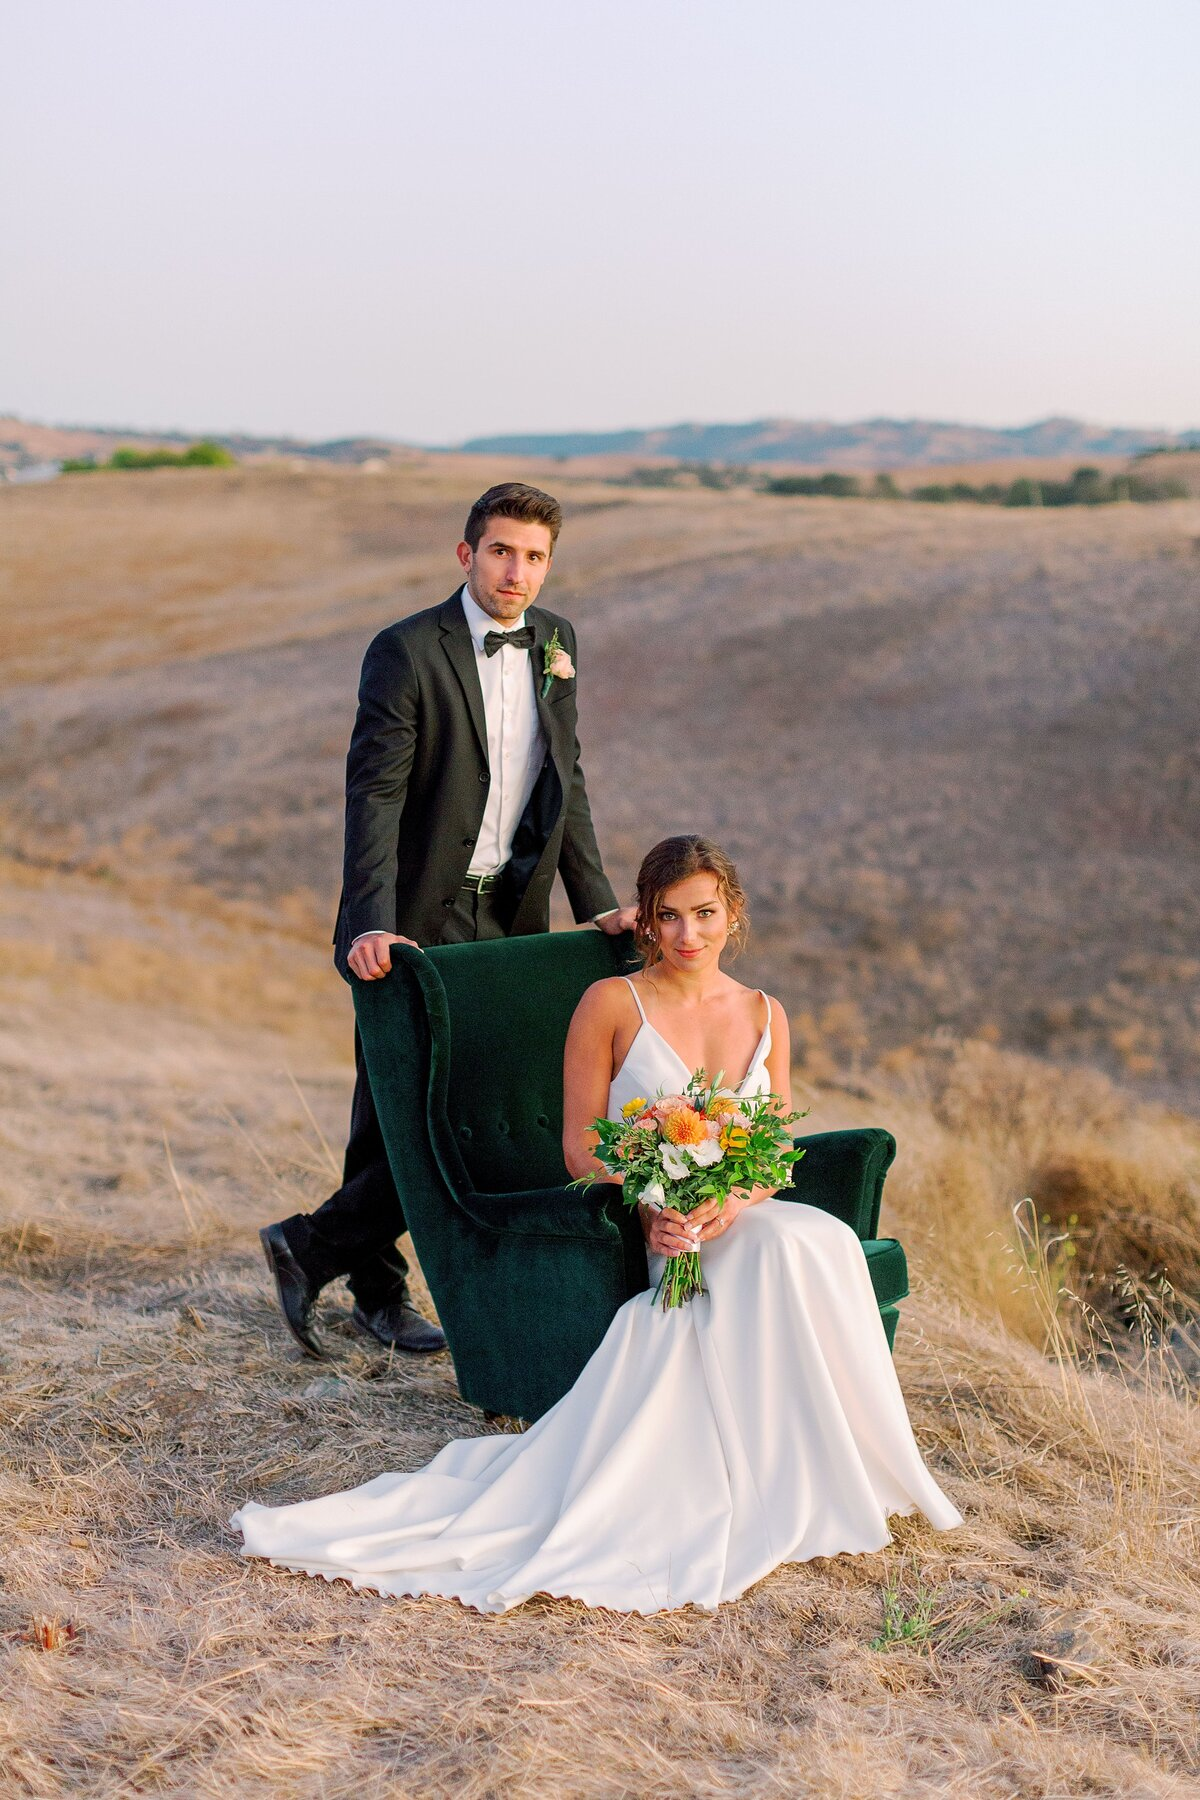 20191020 Modern Elegance Wedding Styled Shoot at Three Steves Winery Livermore_Bethany Picone Photography-267_WEB